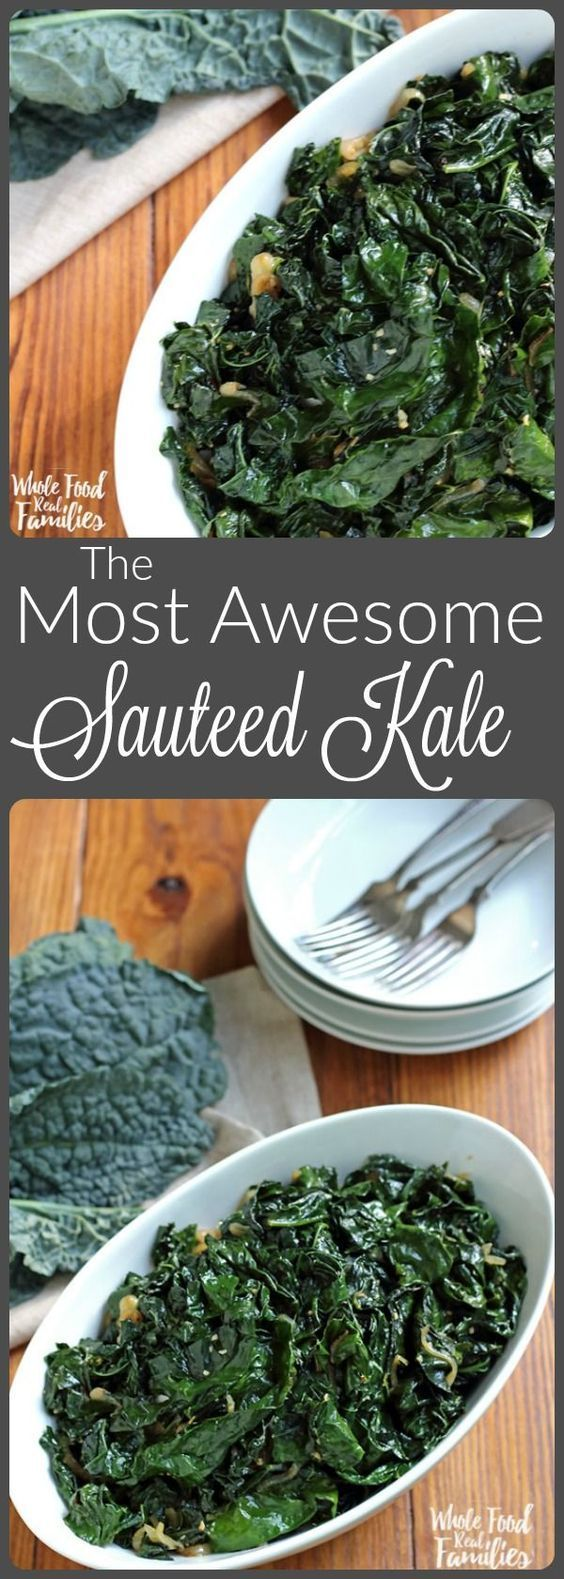 The Most Awesome Sauteed Kale! This is the number one recipe at Whole Food   Real Families for 2 years running. Turn your kale-haters into kale-lovers! @wholefoodrealfa